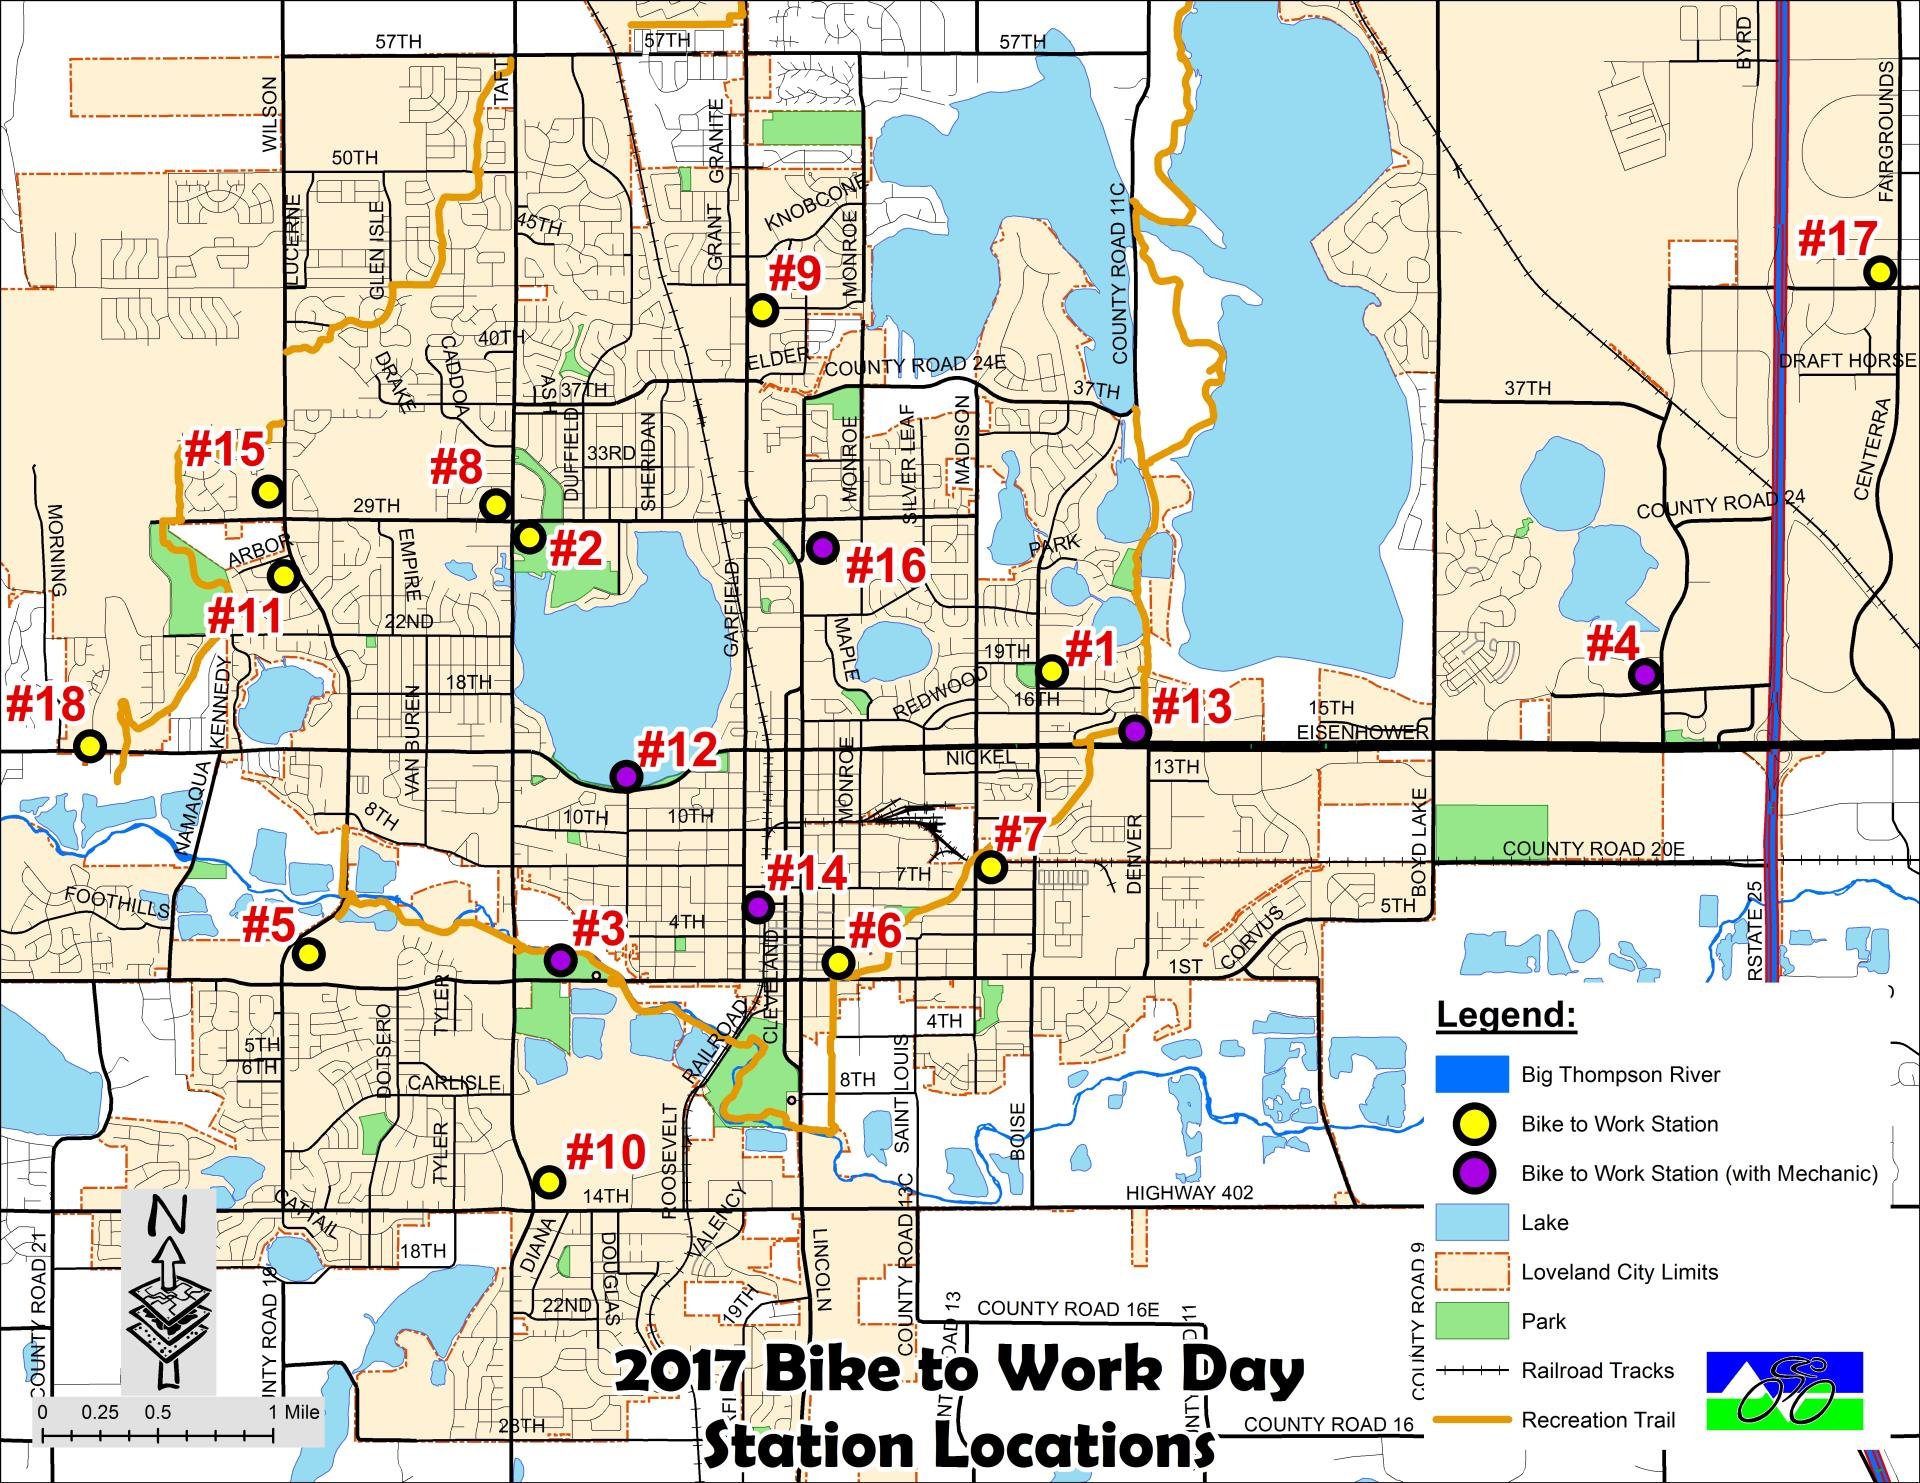 Bike to Work Station location map